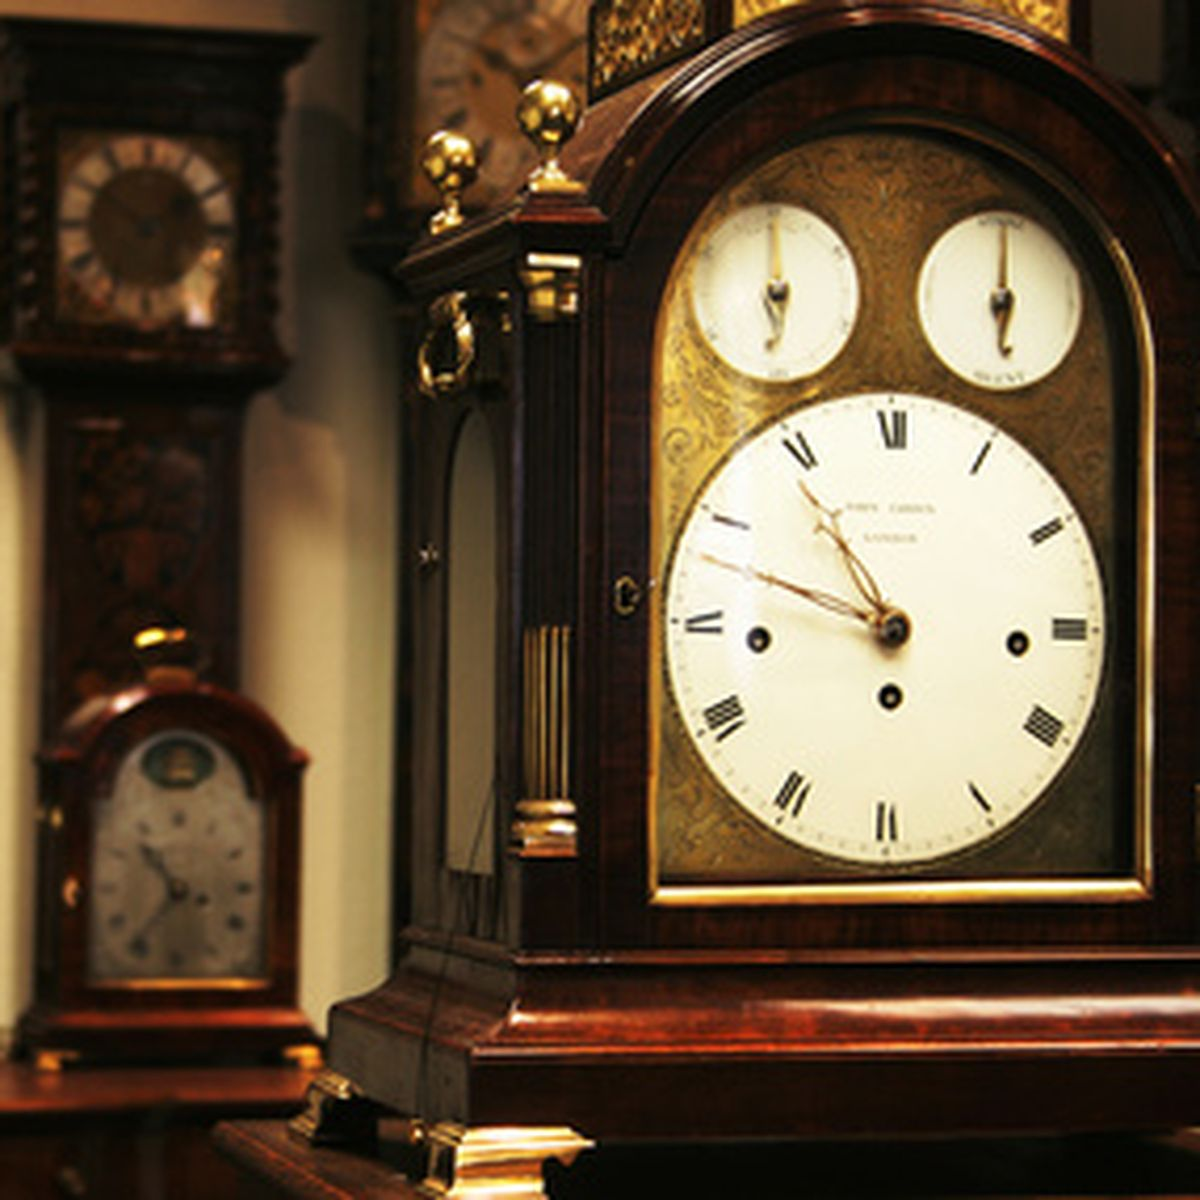 Carriage Clocks and the British Antique Spirit